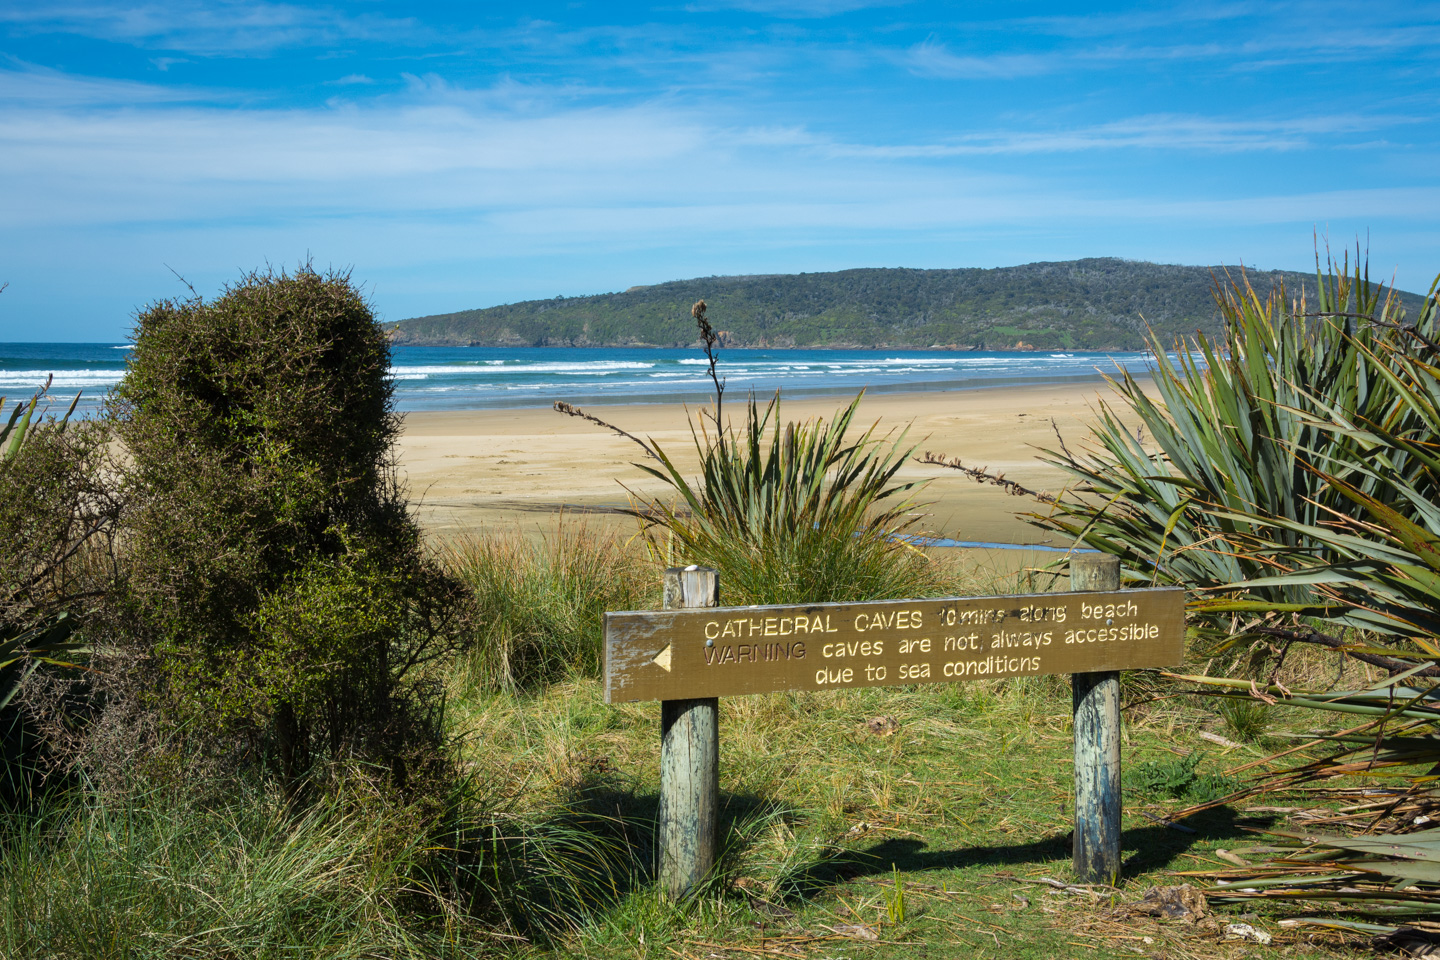 Catlins – Cathedral Caves